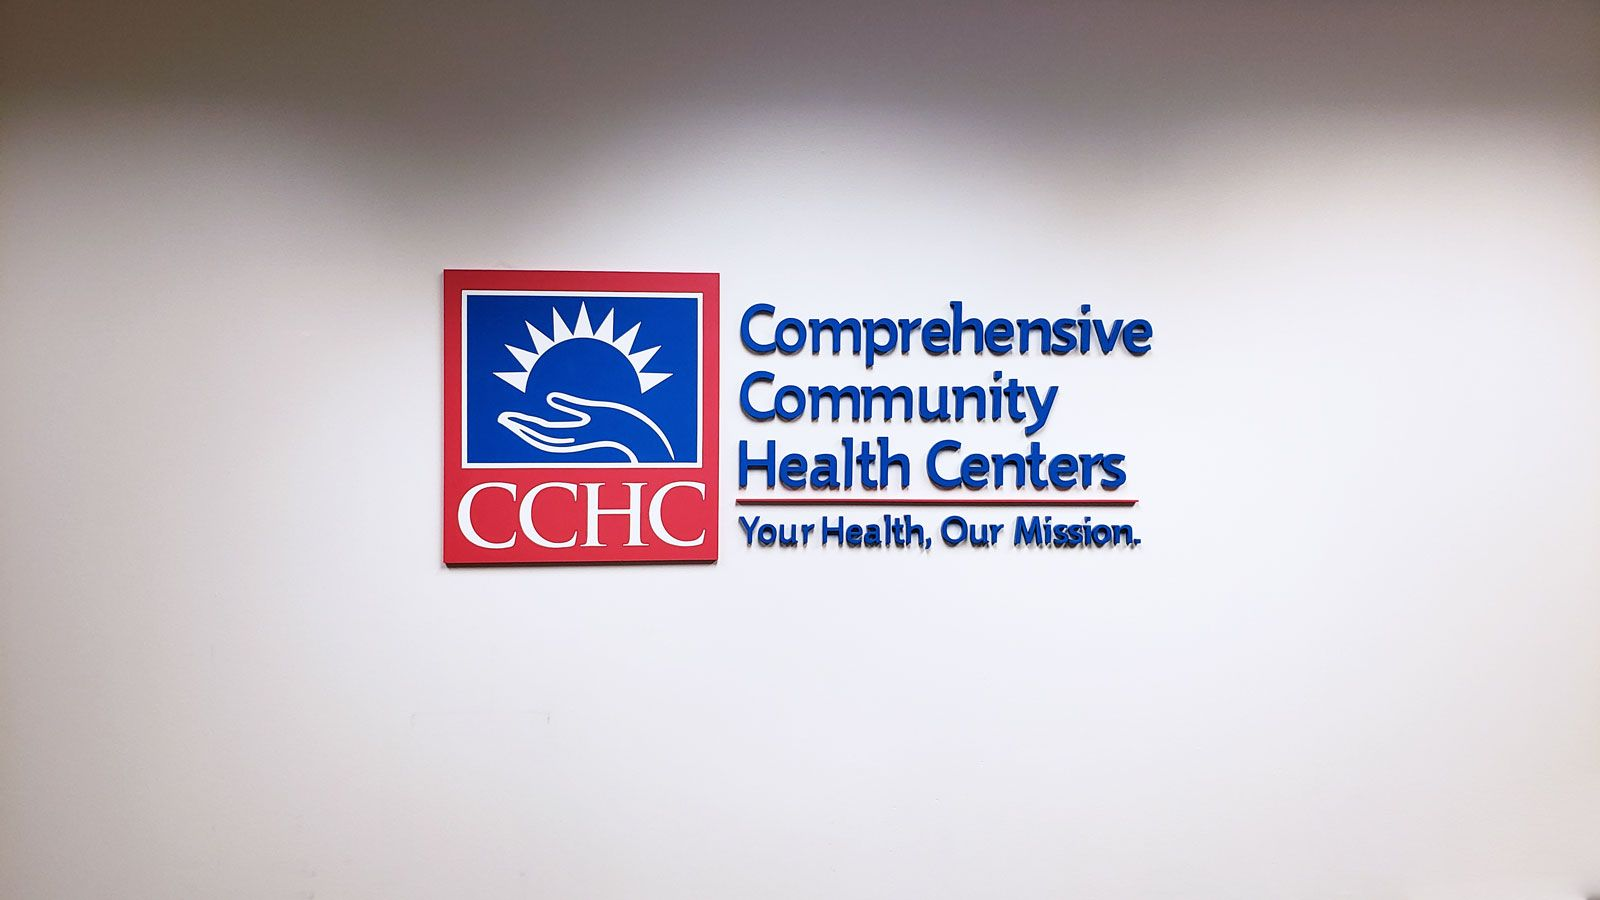 Comprehensive Community Health Centers 3D letters